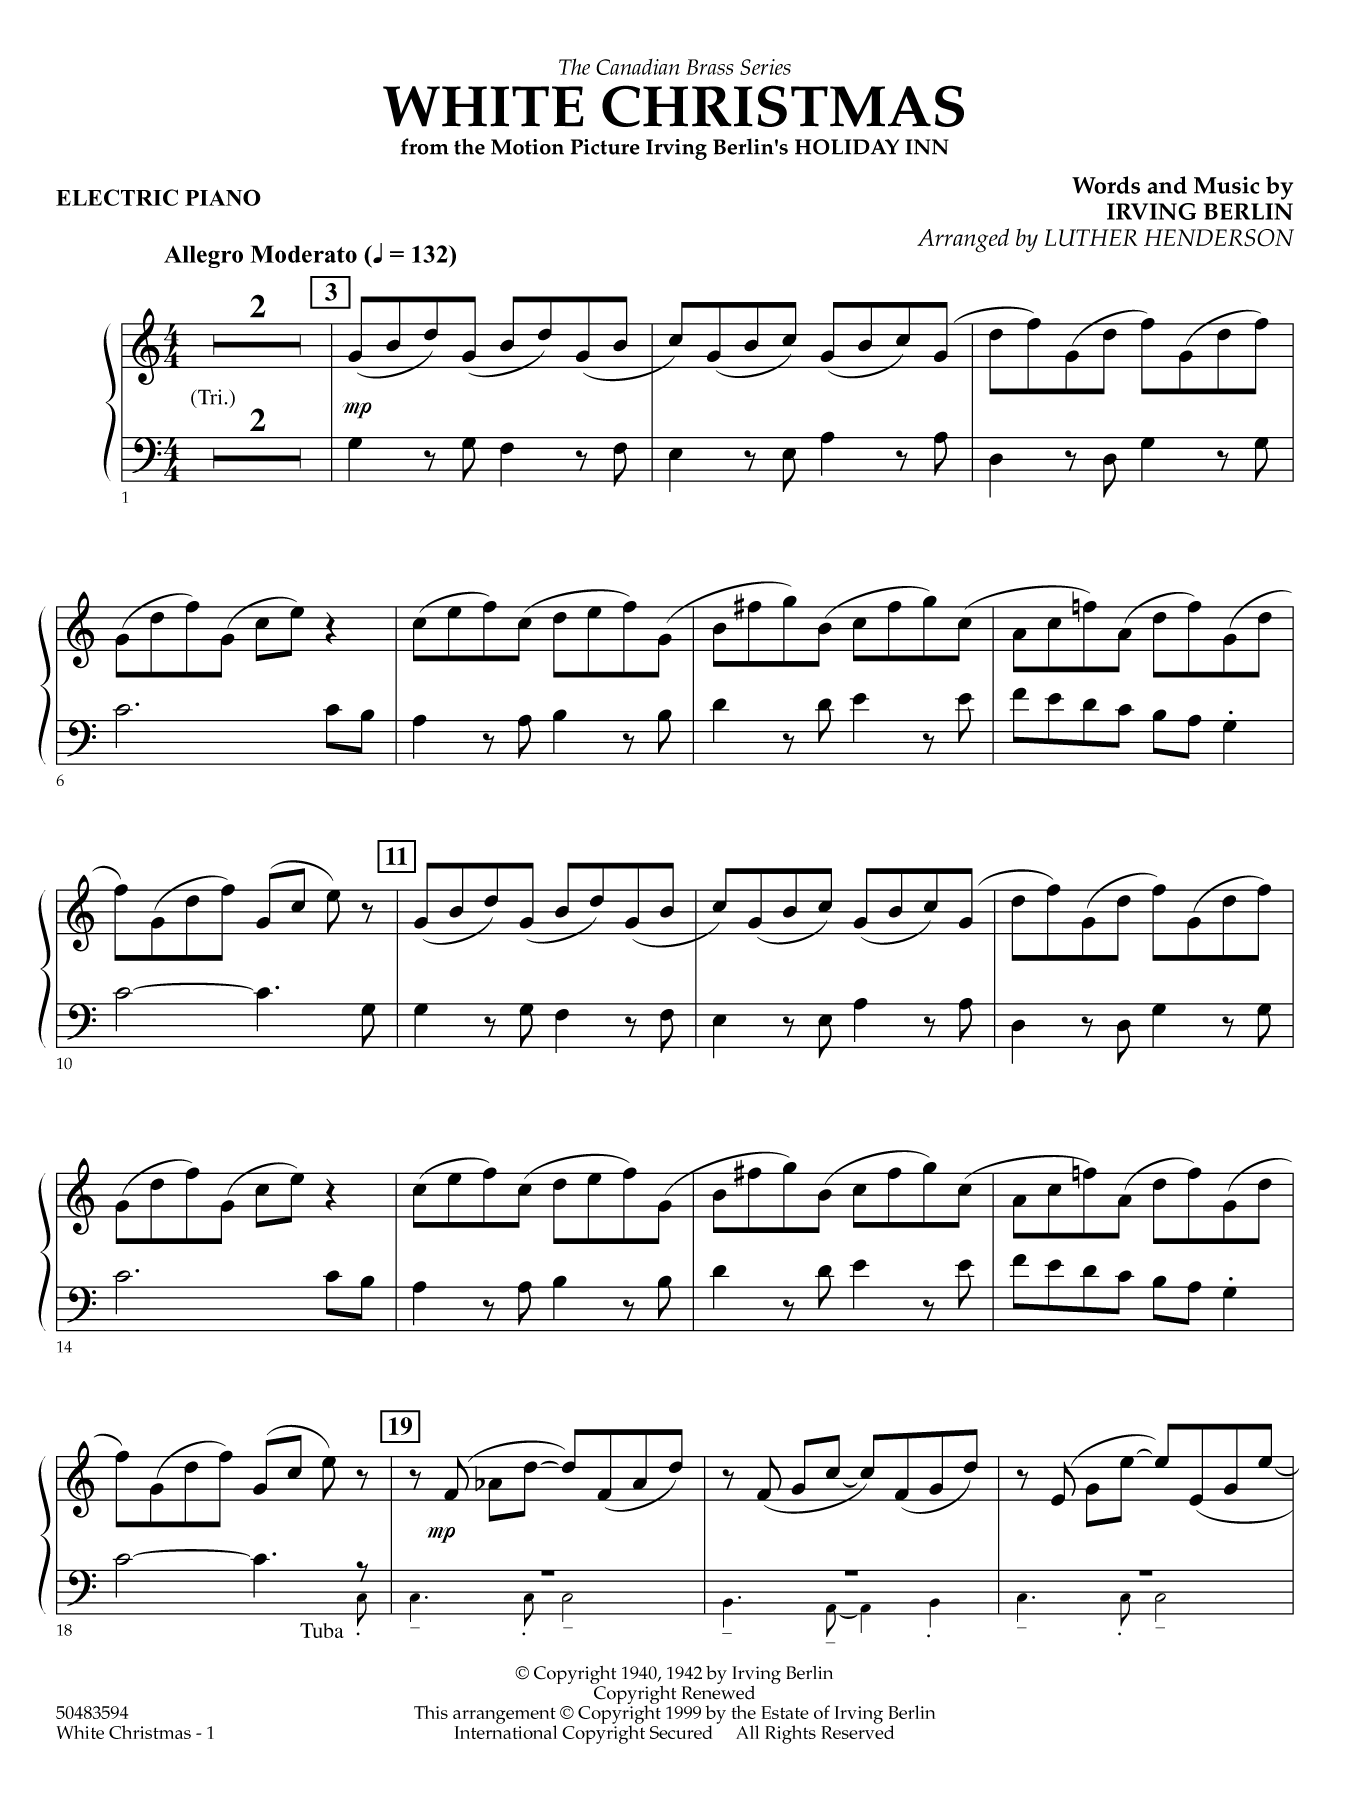 White Christmas - Electronic Keyboard Sheet Music